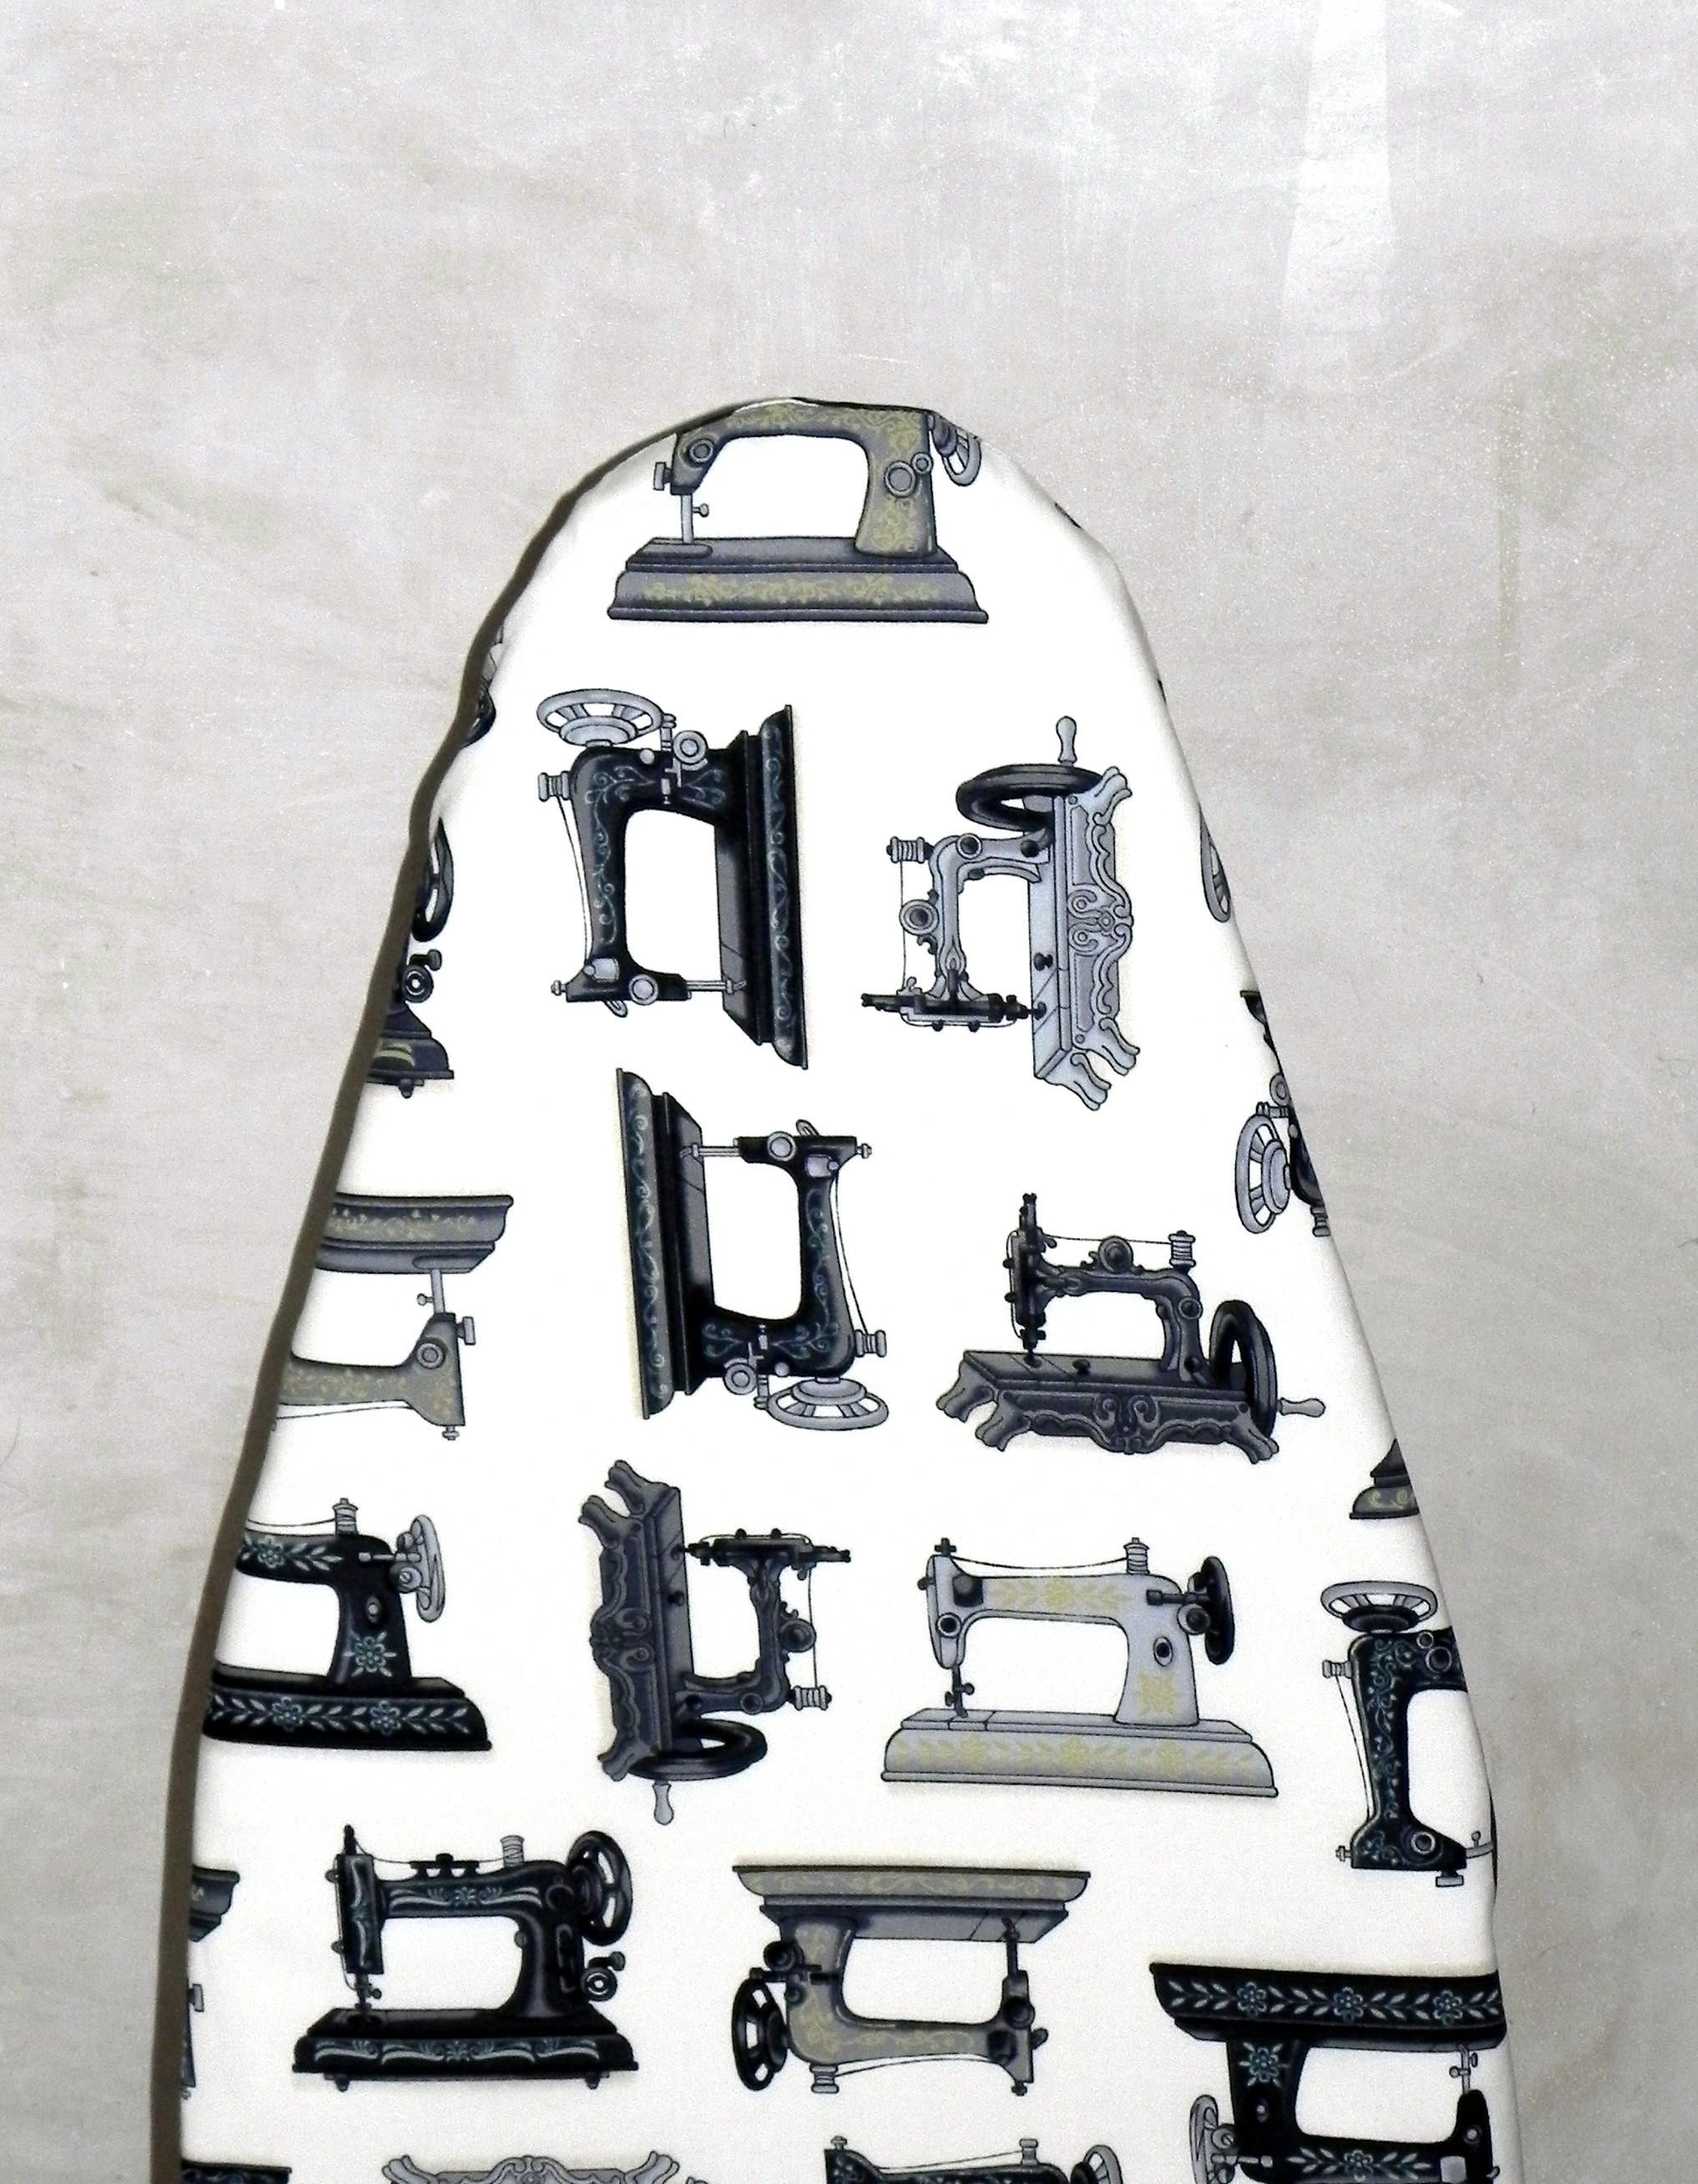 Tabletop Ironing Board Cover   Vintage Sewing Machines   Singer   Laundry  And Housewares